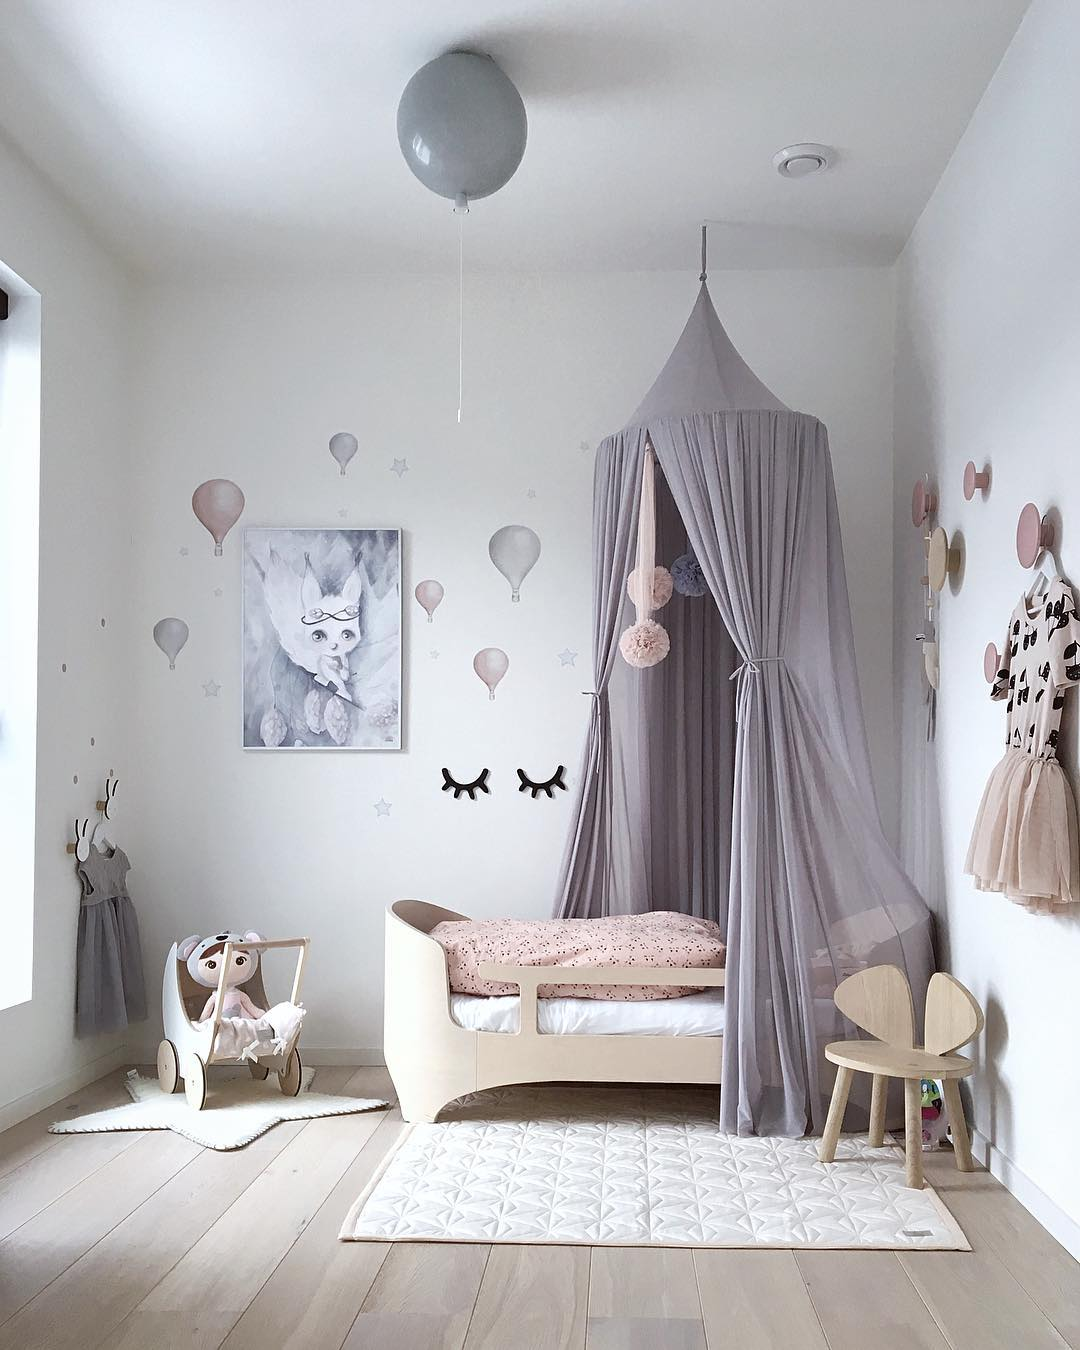 top 25 sch nste ideen f r das kinderzimmer gefunden bei instagram kidswoodlove. Black Bedroom Furniture Sets. Home Design Ideas